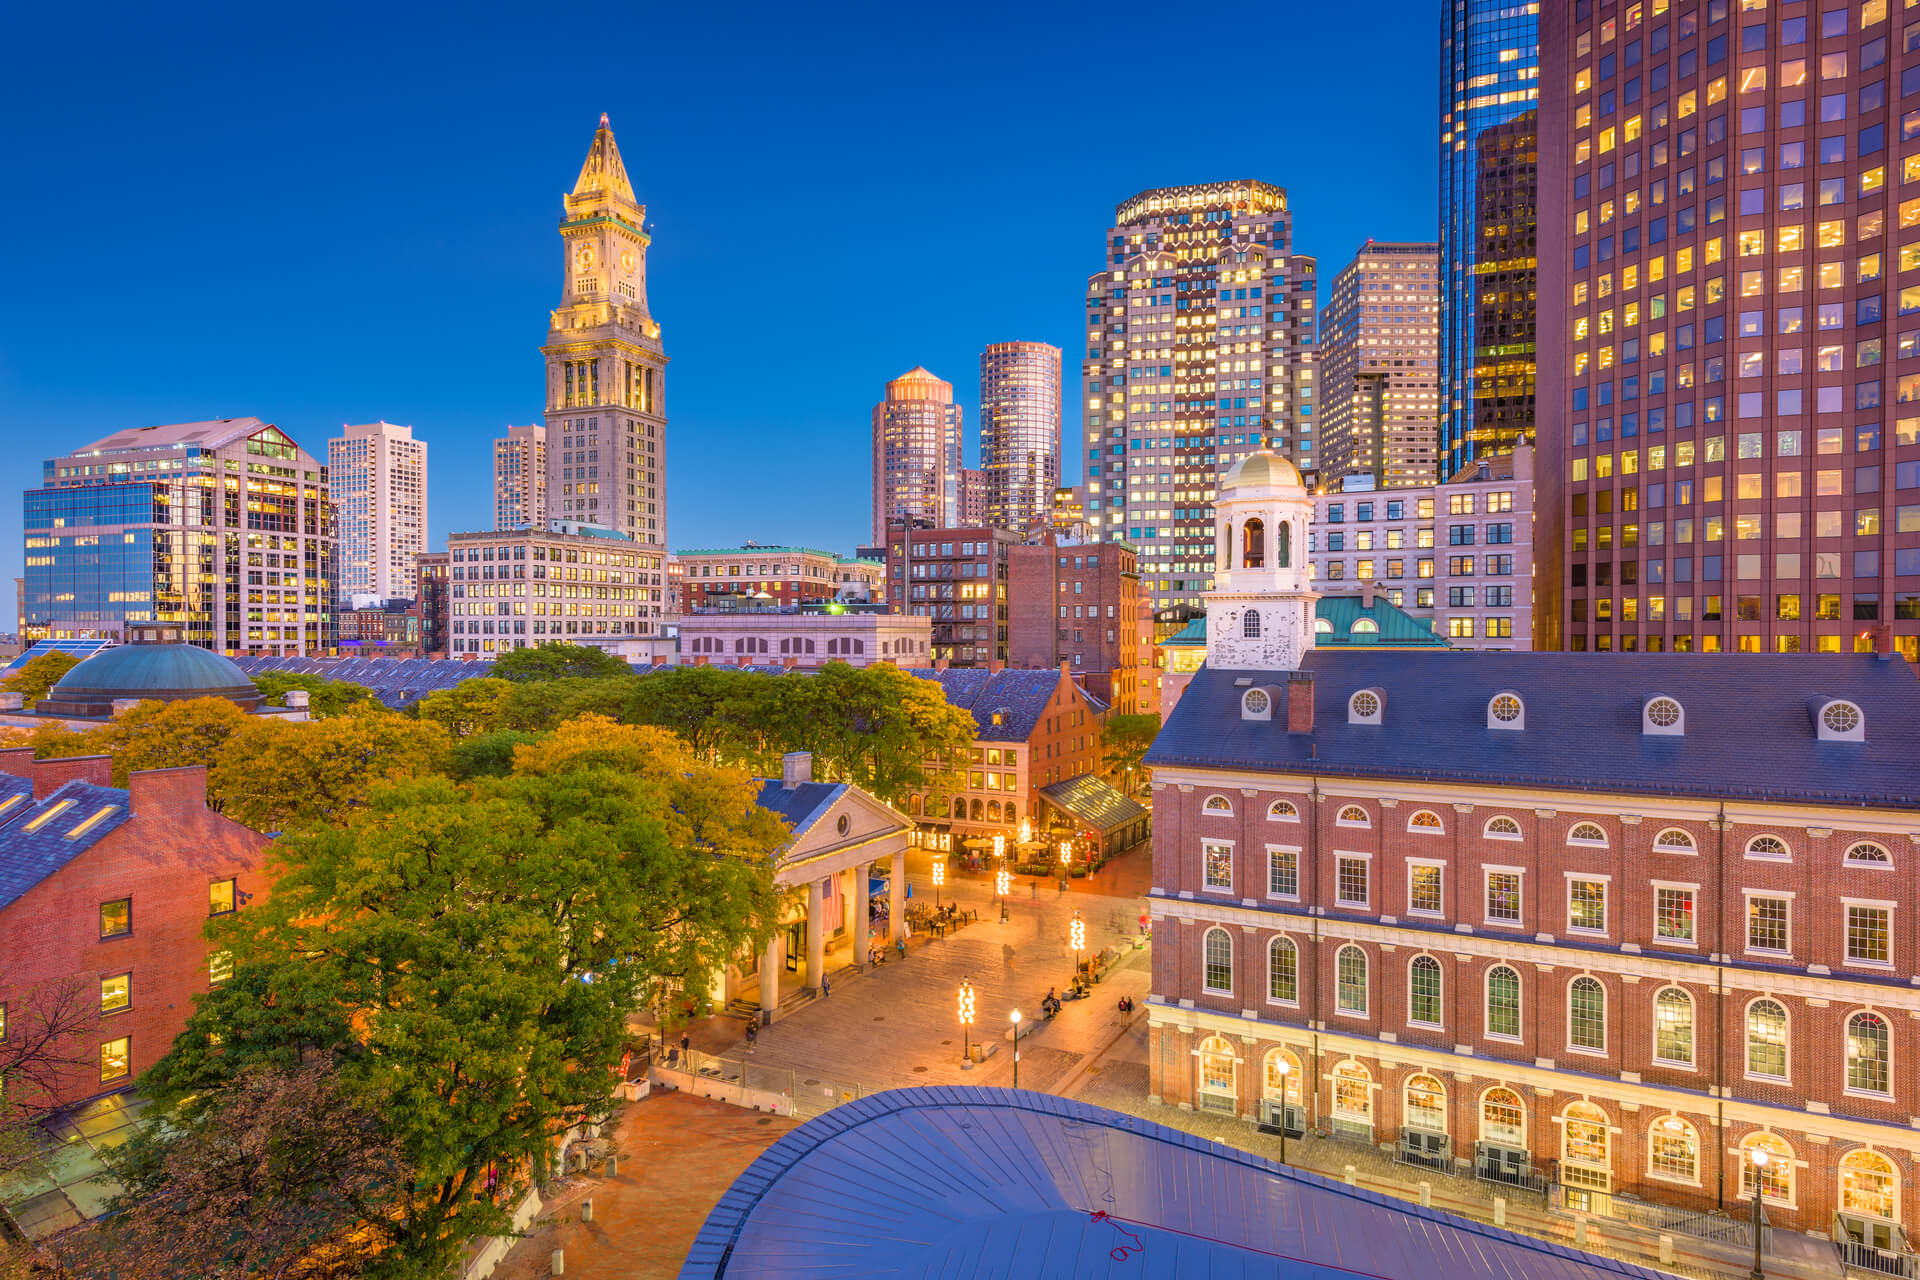 Boston's Housing Market: 66% Price Growth in a Decade & a Look Beyond COVID-19 to 2030